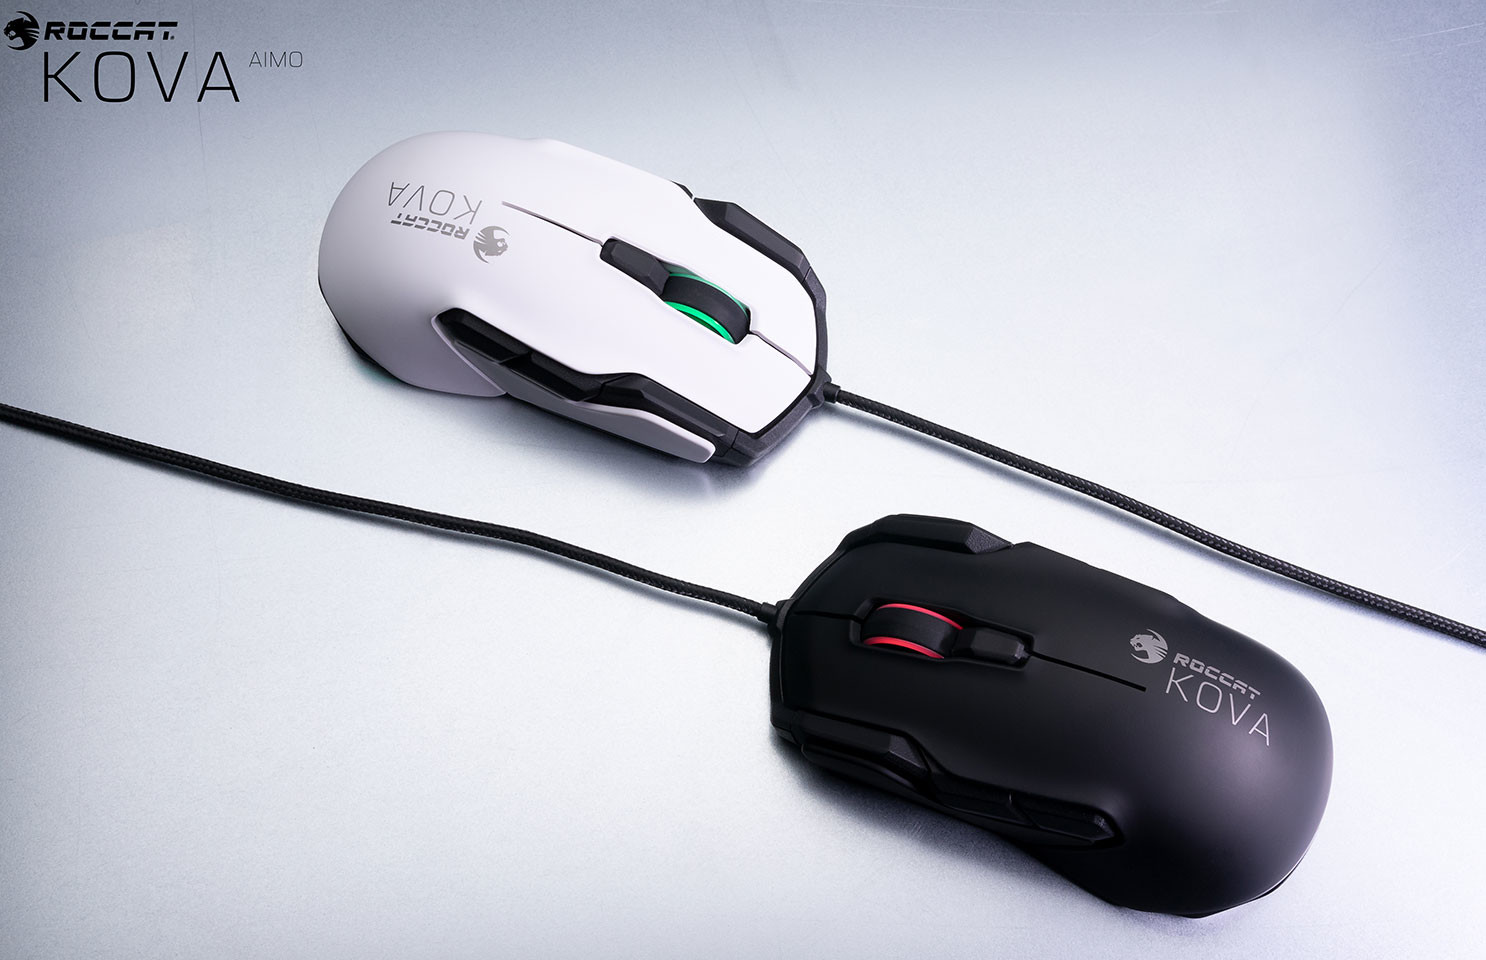 Roccat Announces the Kova AIMO Gaming Mouse   TechPowerUp Forums